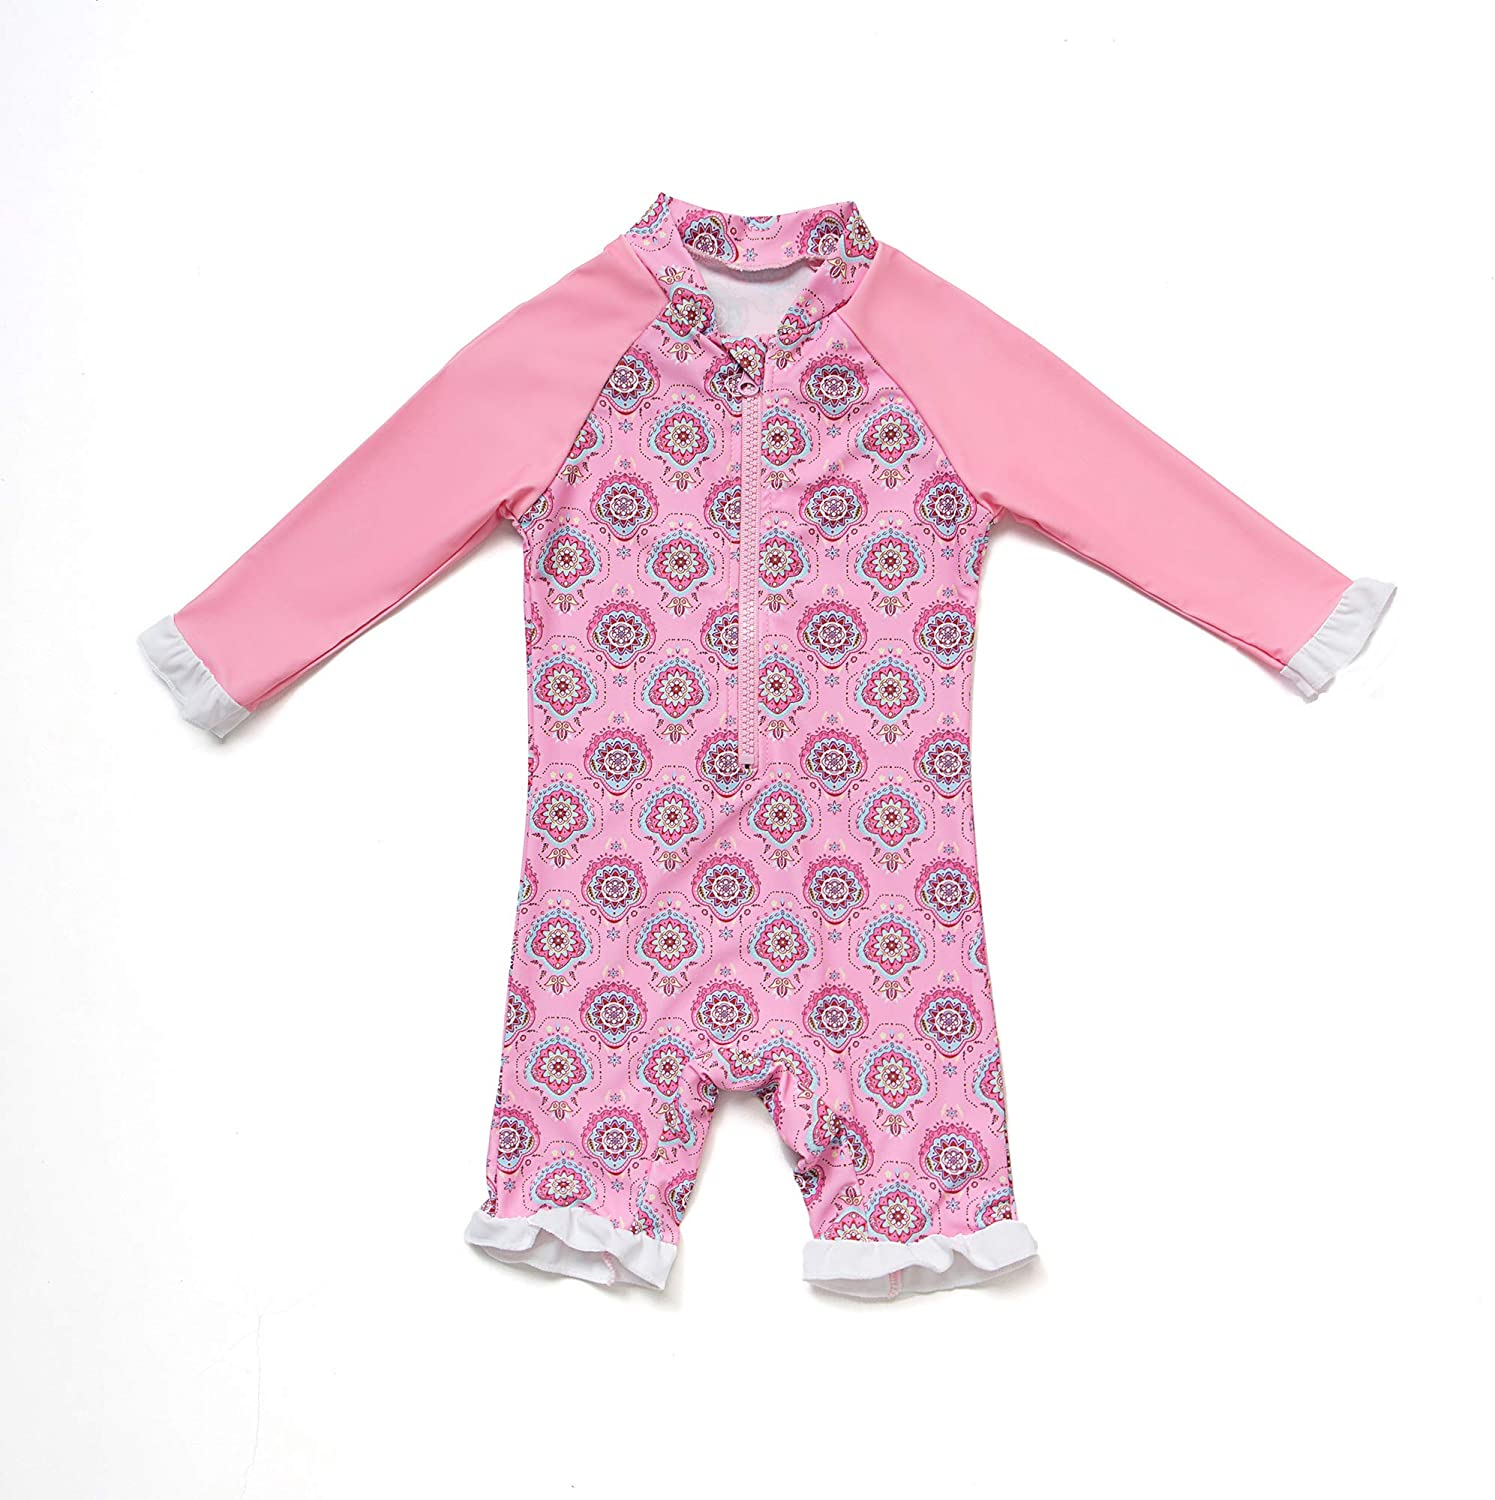 Baby Girls Sunsuit UPF 50+ Sun Protection One Pieces Long Sleeves Swimwear with Sun Hat(Pink Pattern,24 36Months)